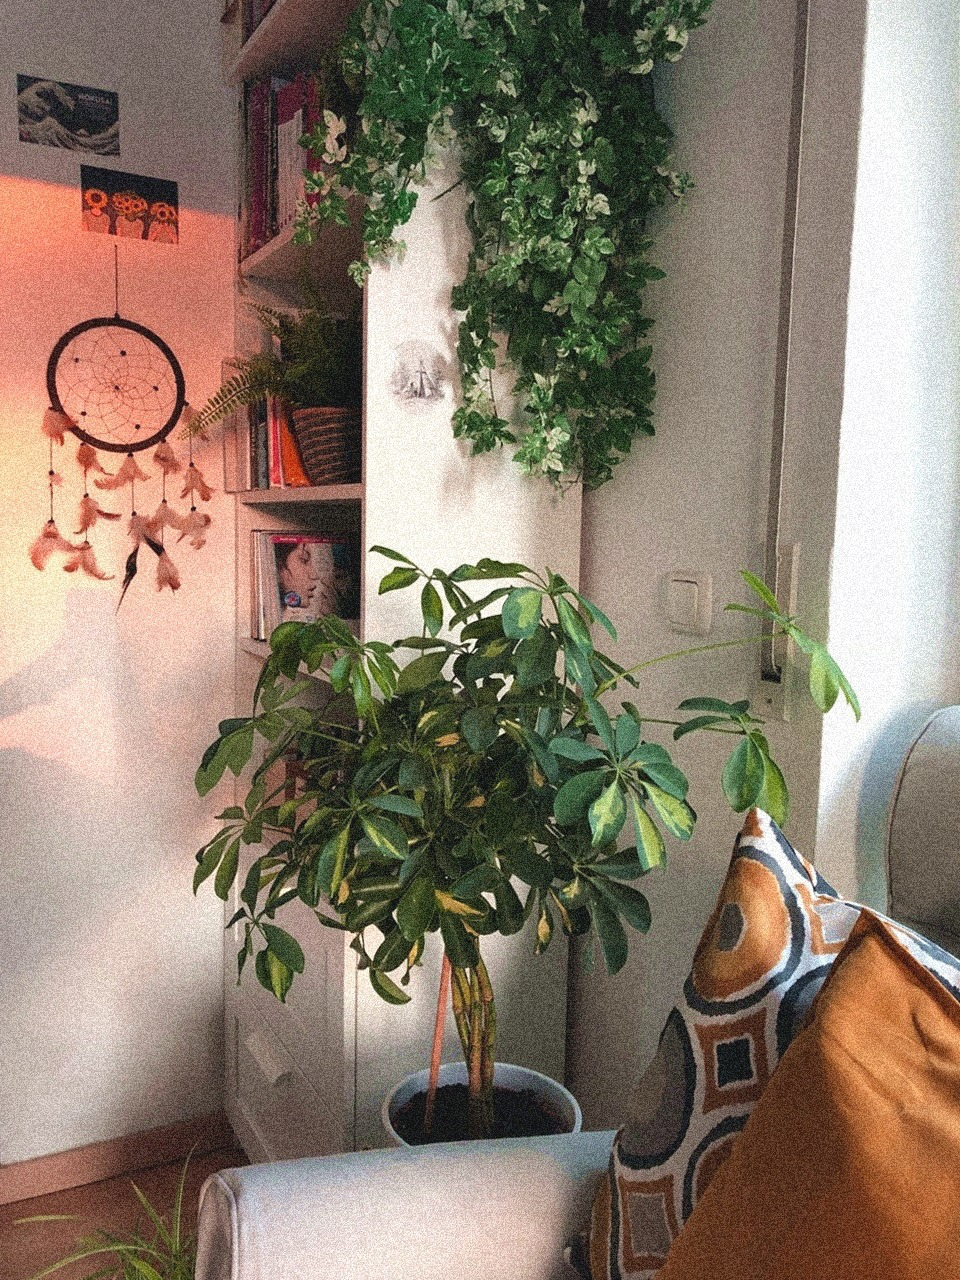 𝐬𝐮𝐪𝐚𝐩𝐥𝐮𝐦 ∘⁺ in 2020 Day and nite, Plants, Plant hanger